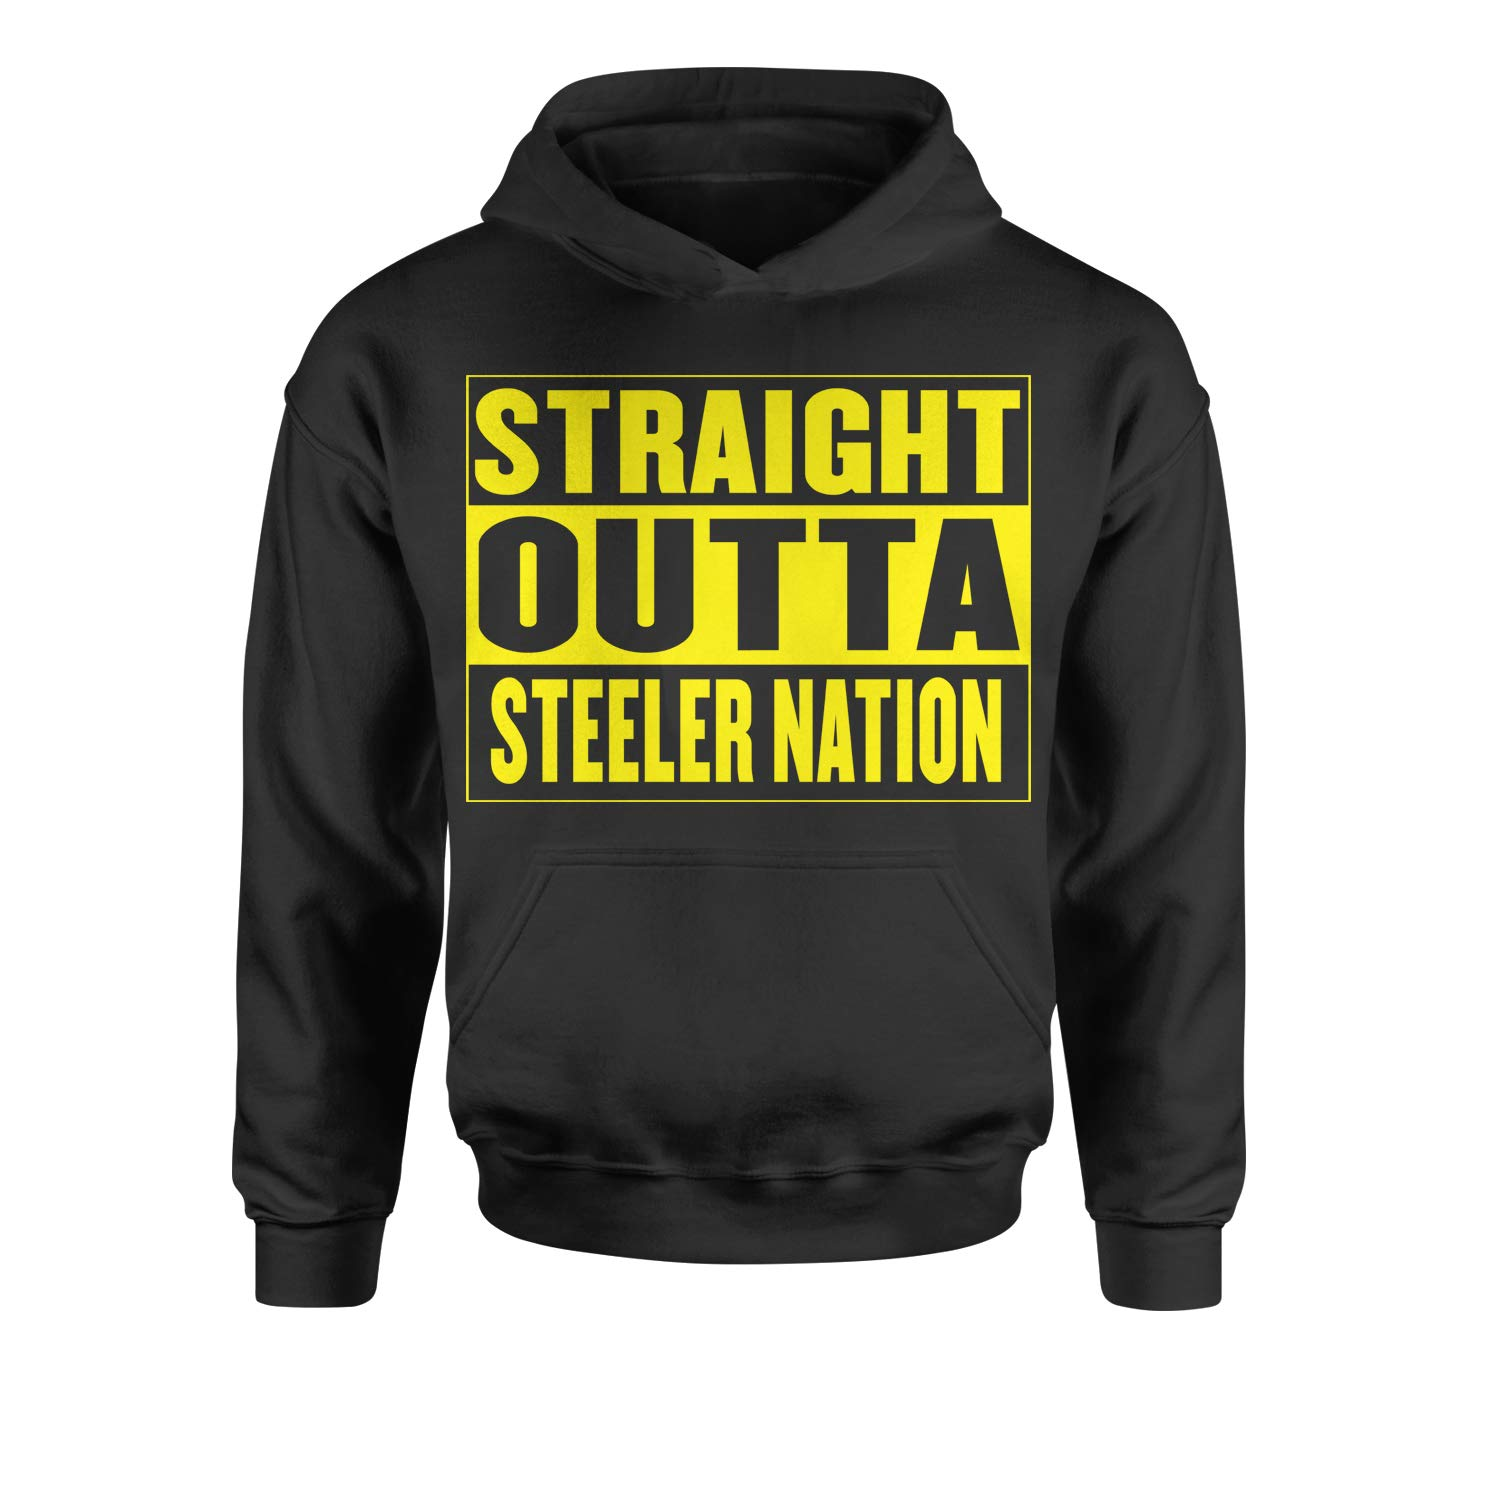 Motivated Culture Straight Outta Steeler Nation Football Youth-Sized Hoodie 2478-Y